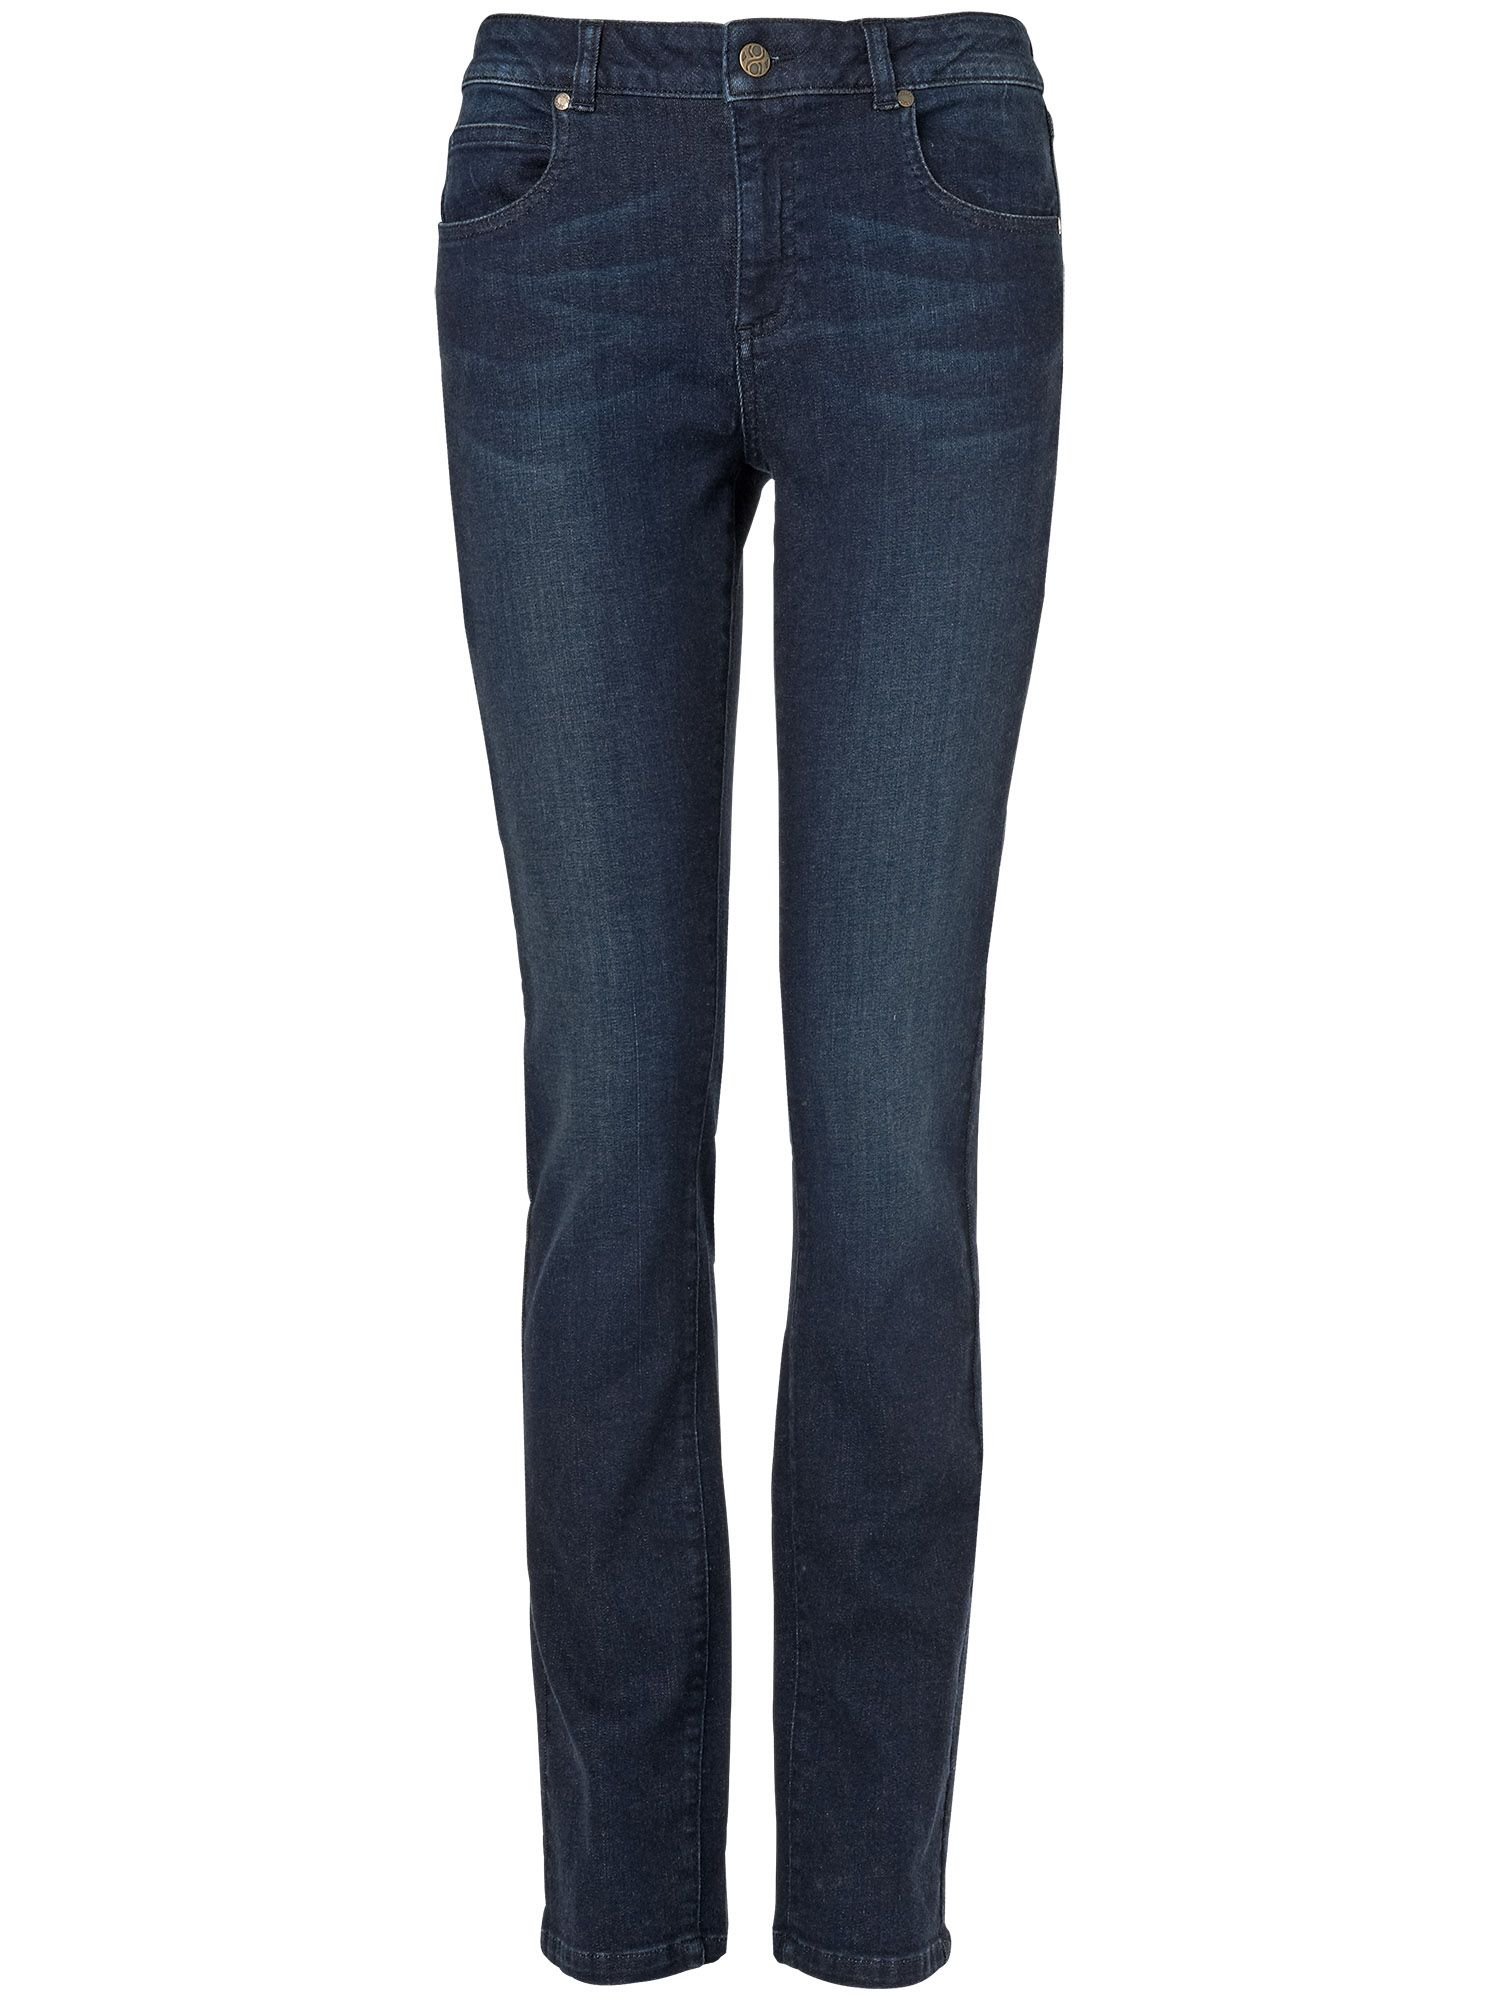 Lucy straight leg jeans